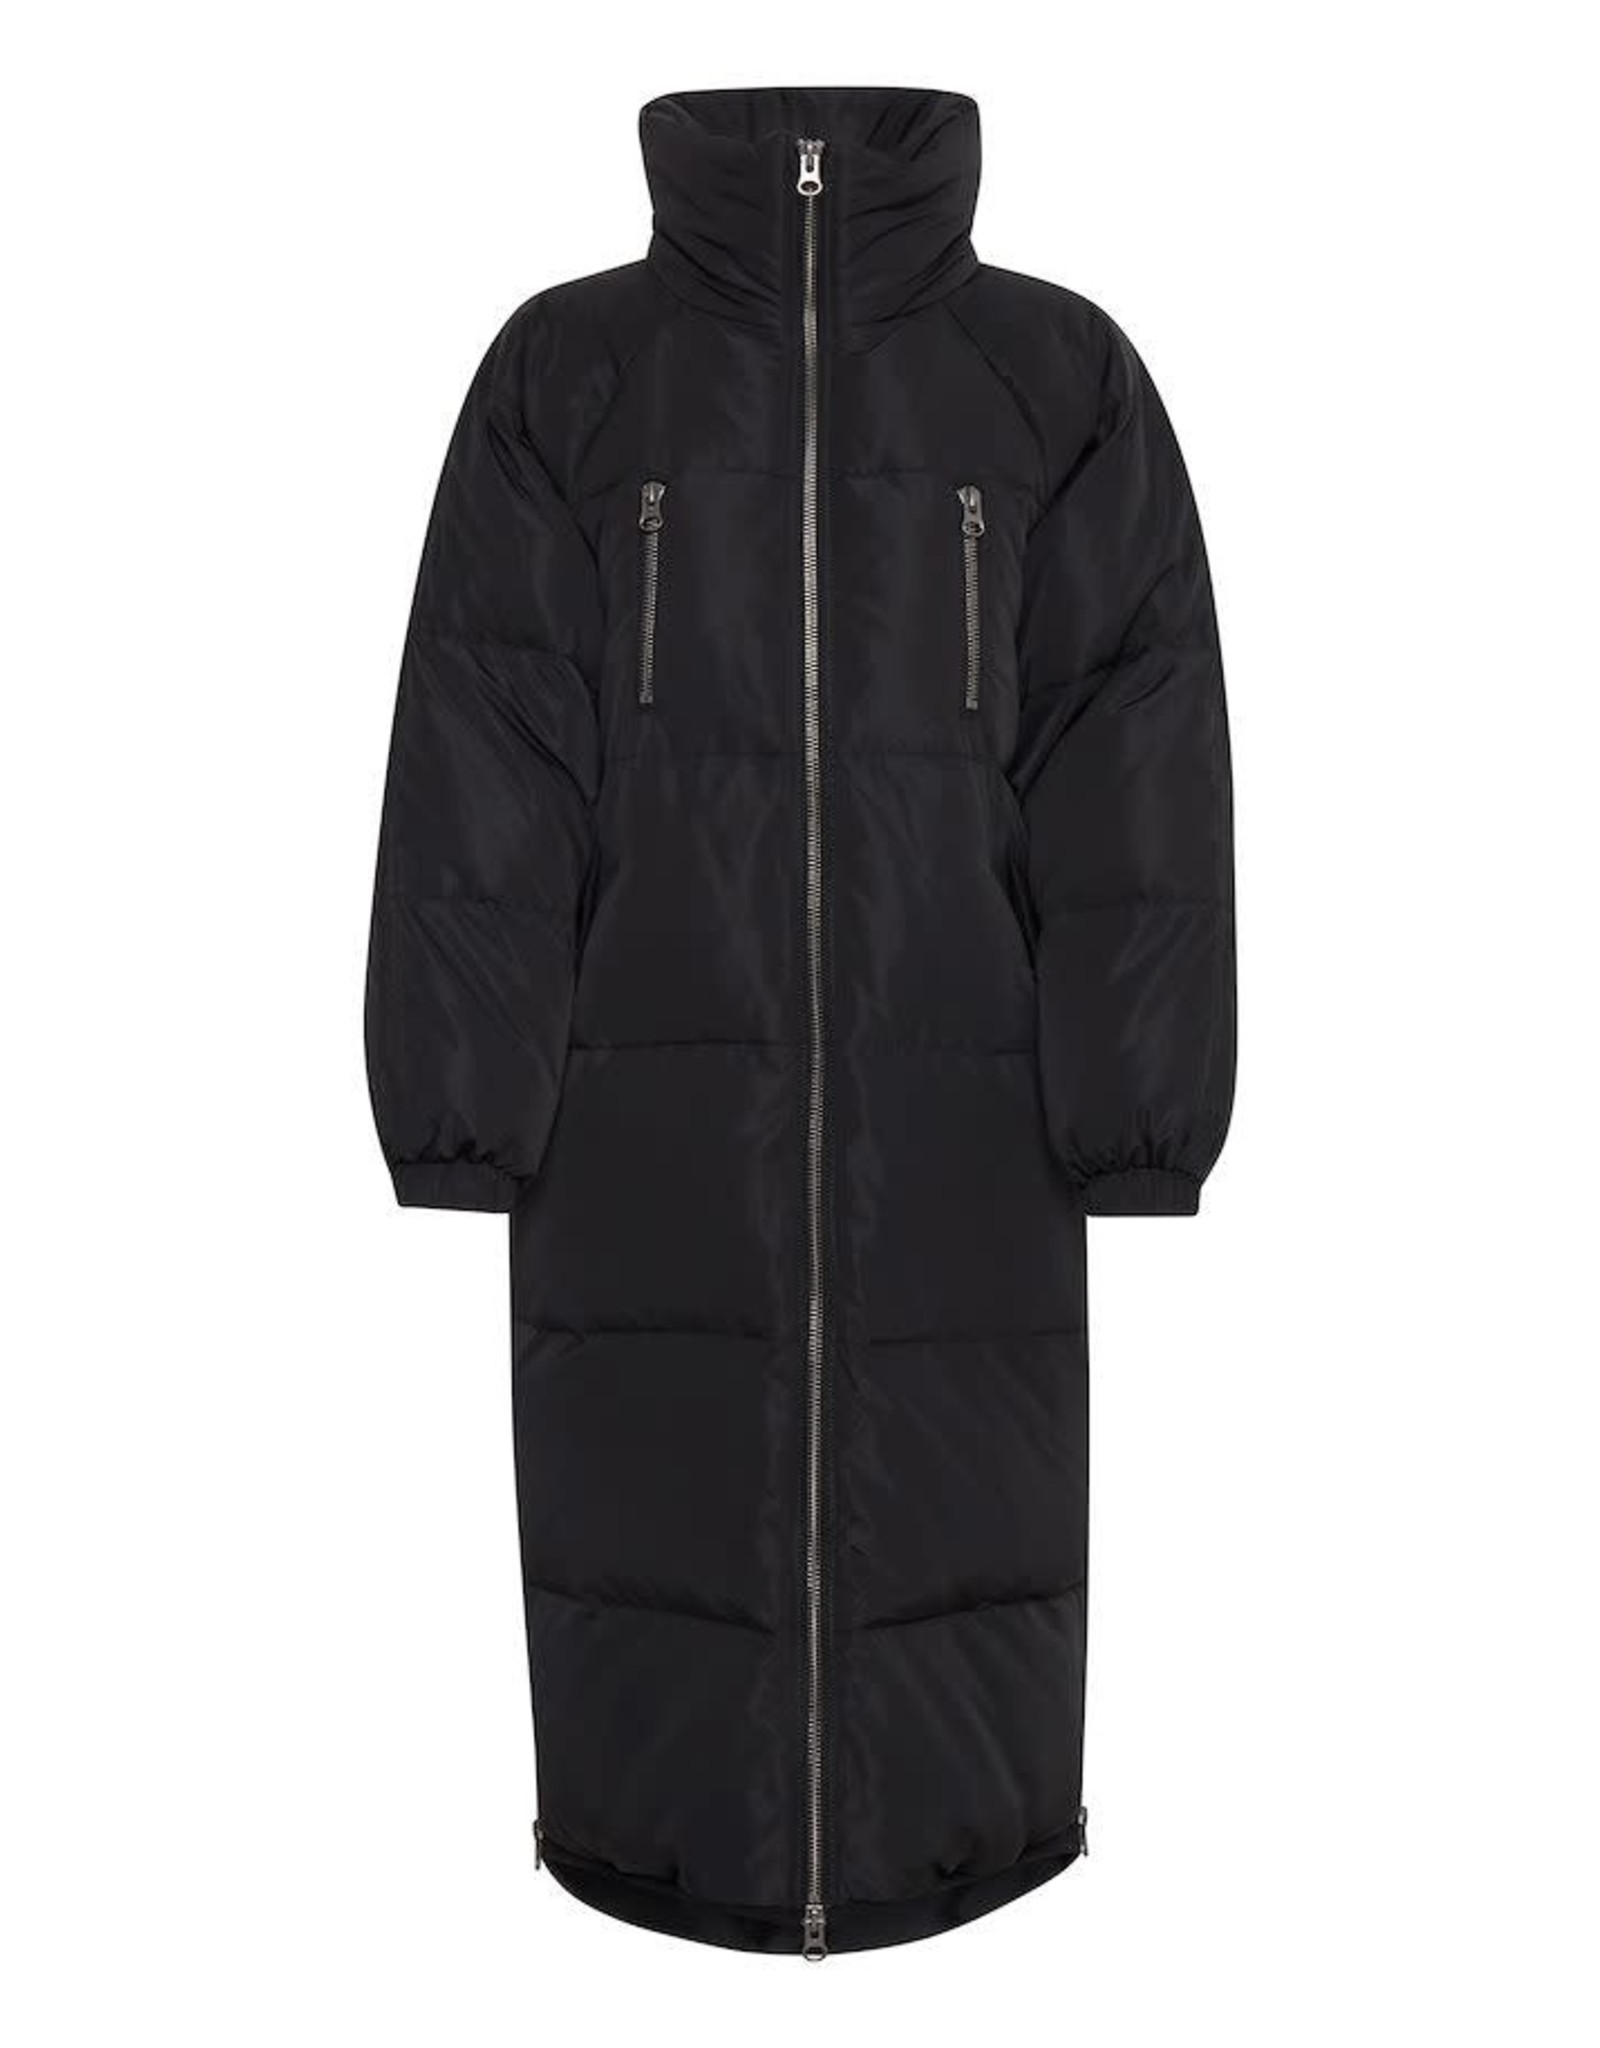 ICHI ICHI - Haley midi length puffer coat